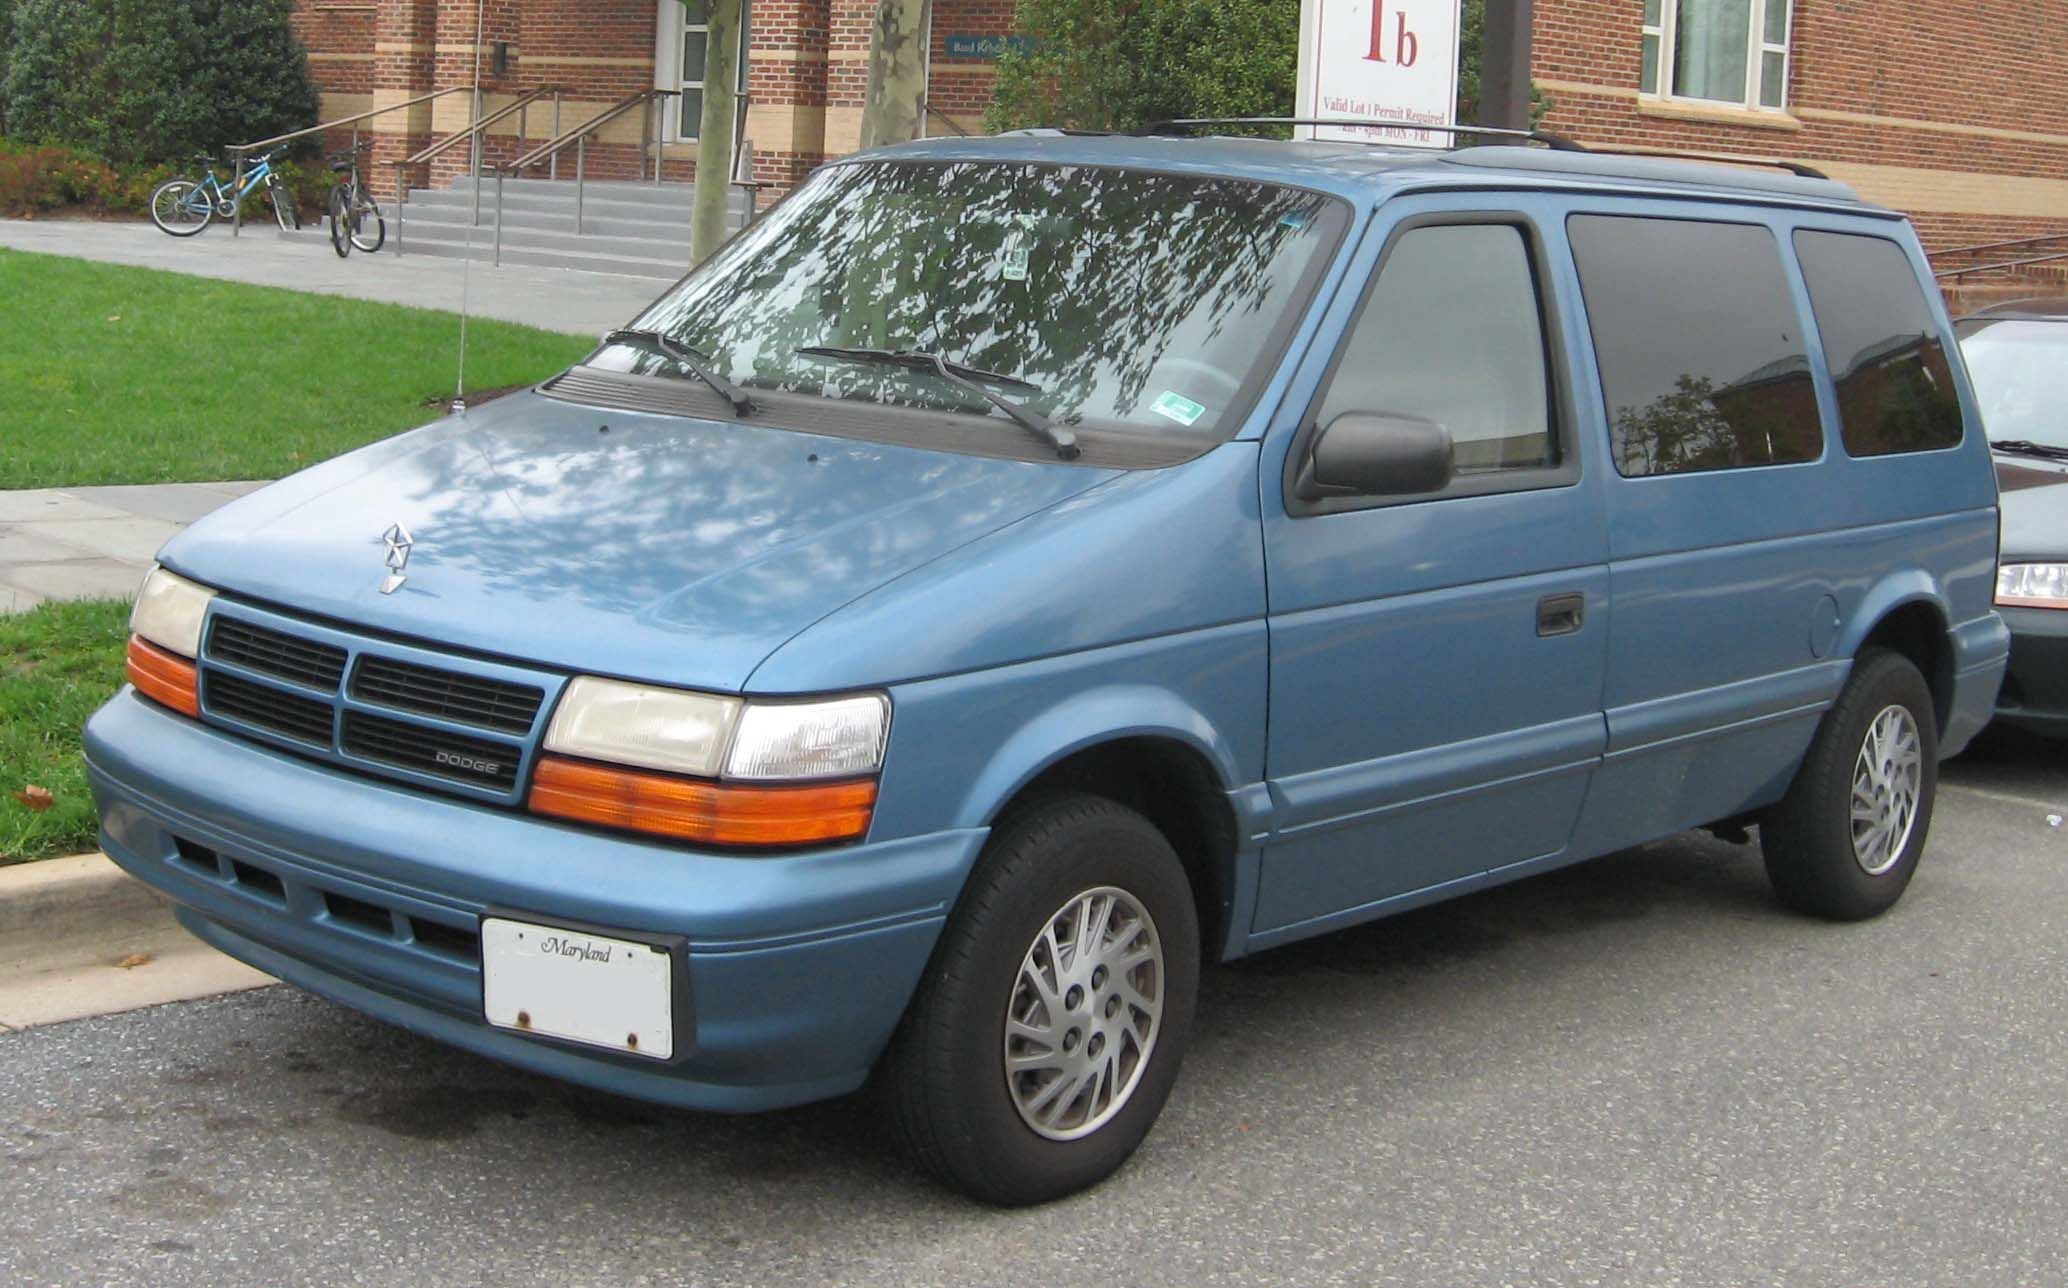 Dodge Caravan - Wikipedia, the free encyclopedia